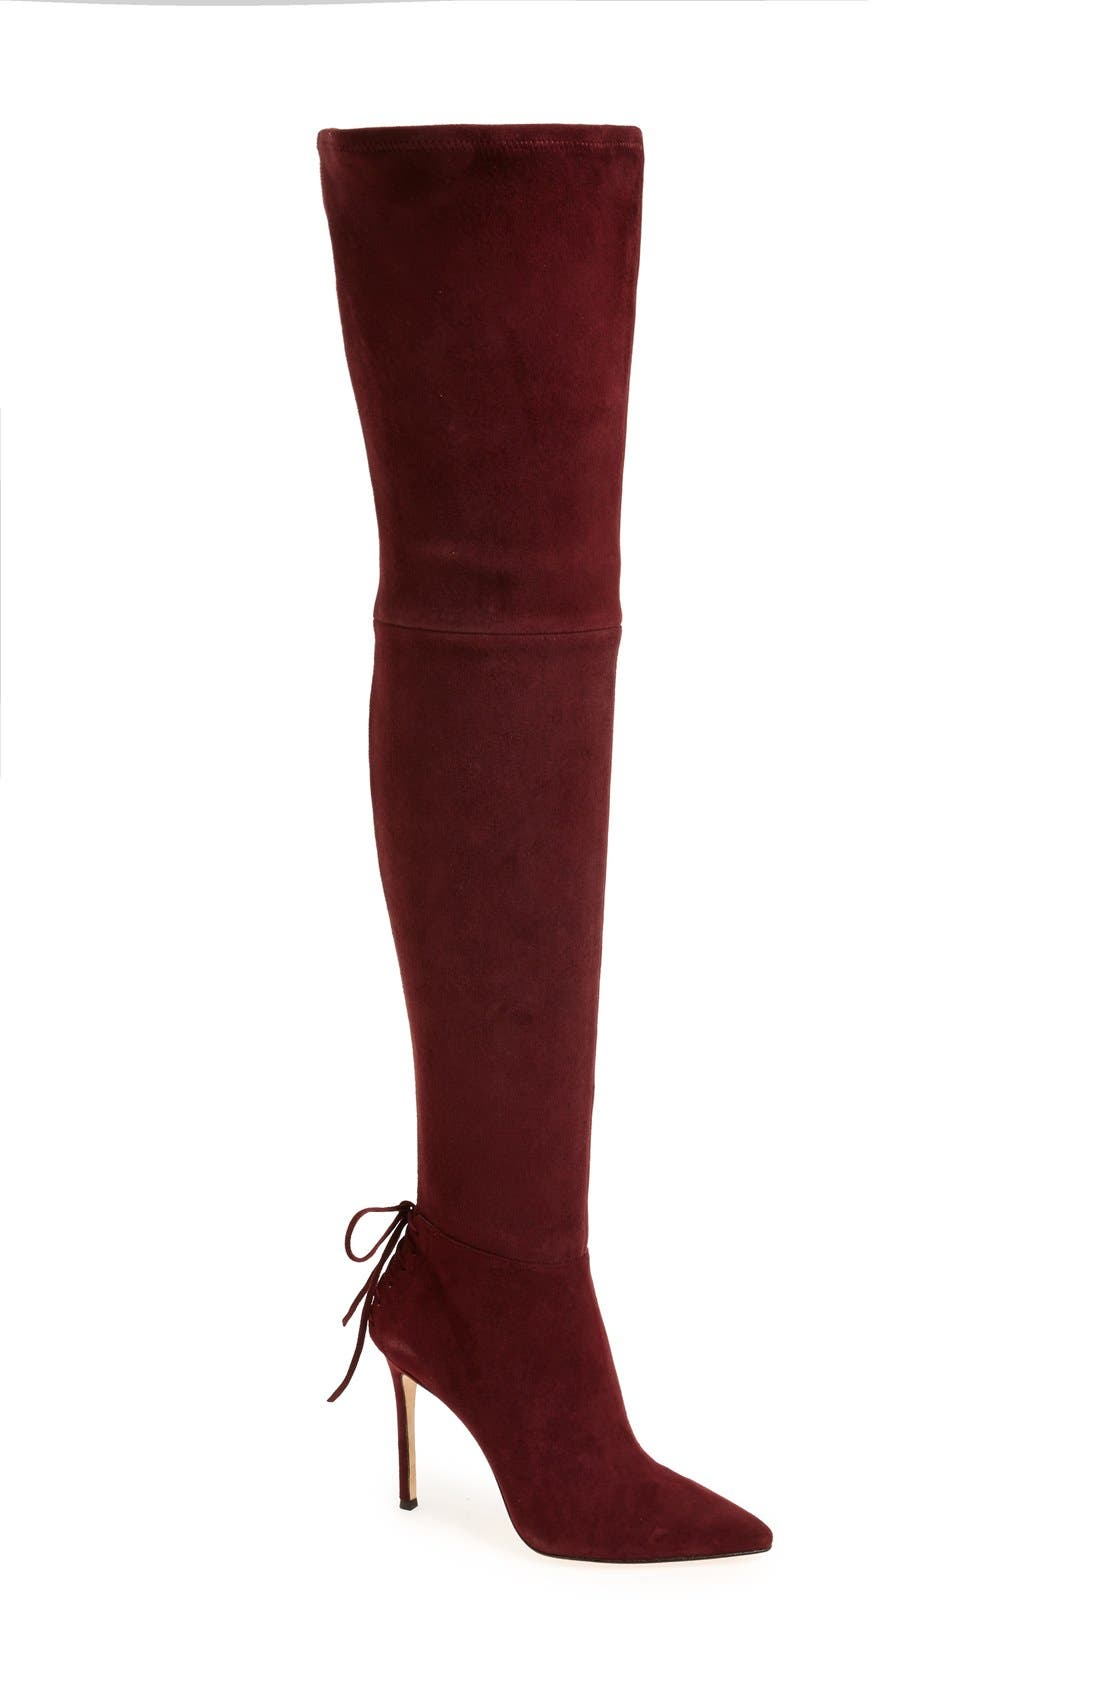 Main Image - Pour la Victoire 'Caterina' Over the Knee Boot (Women)